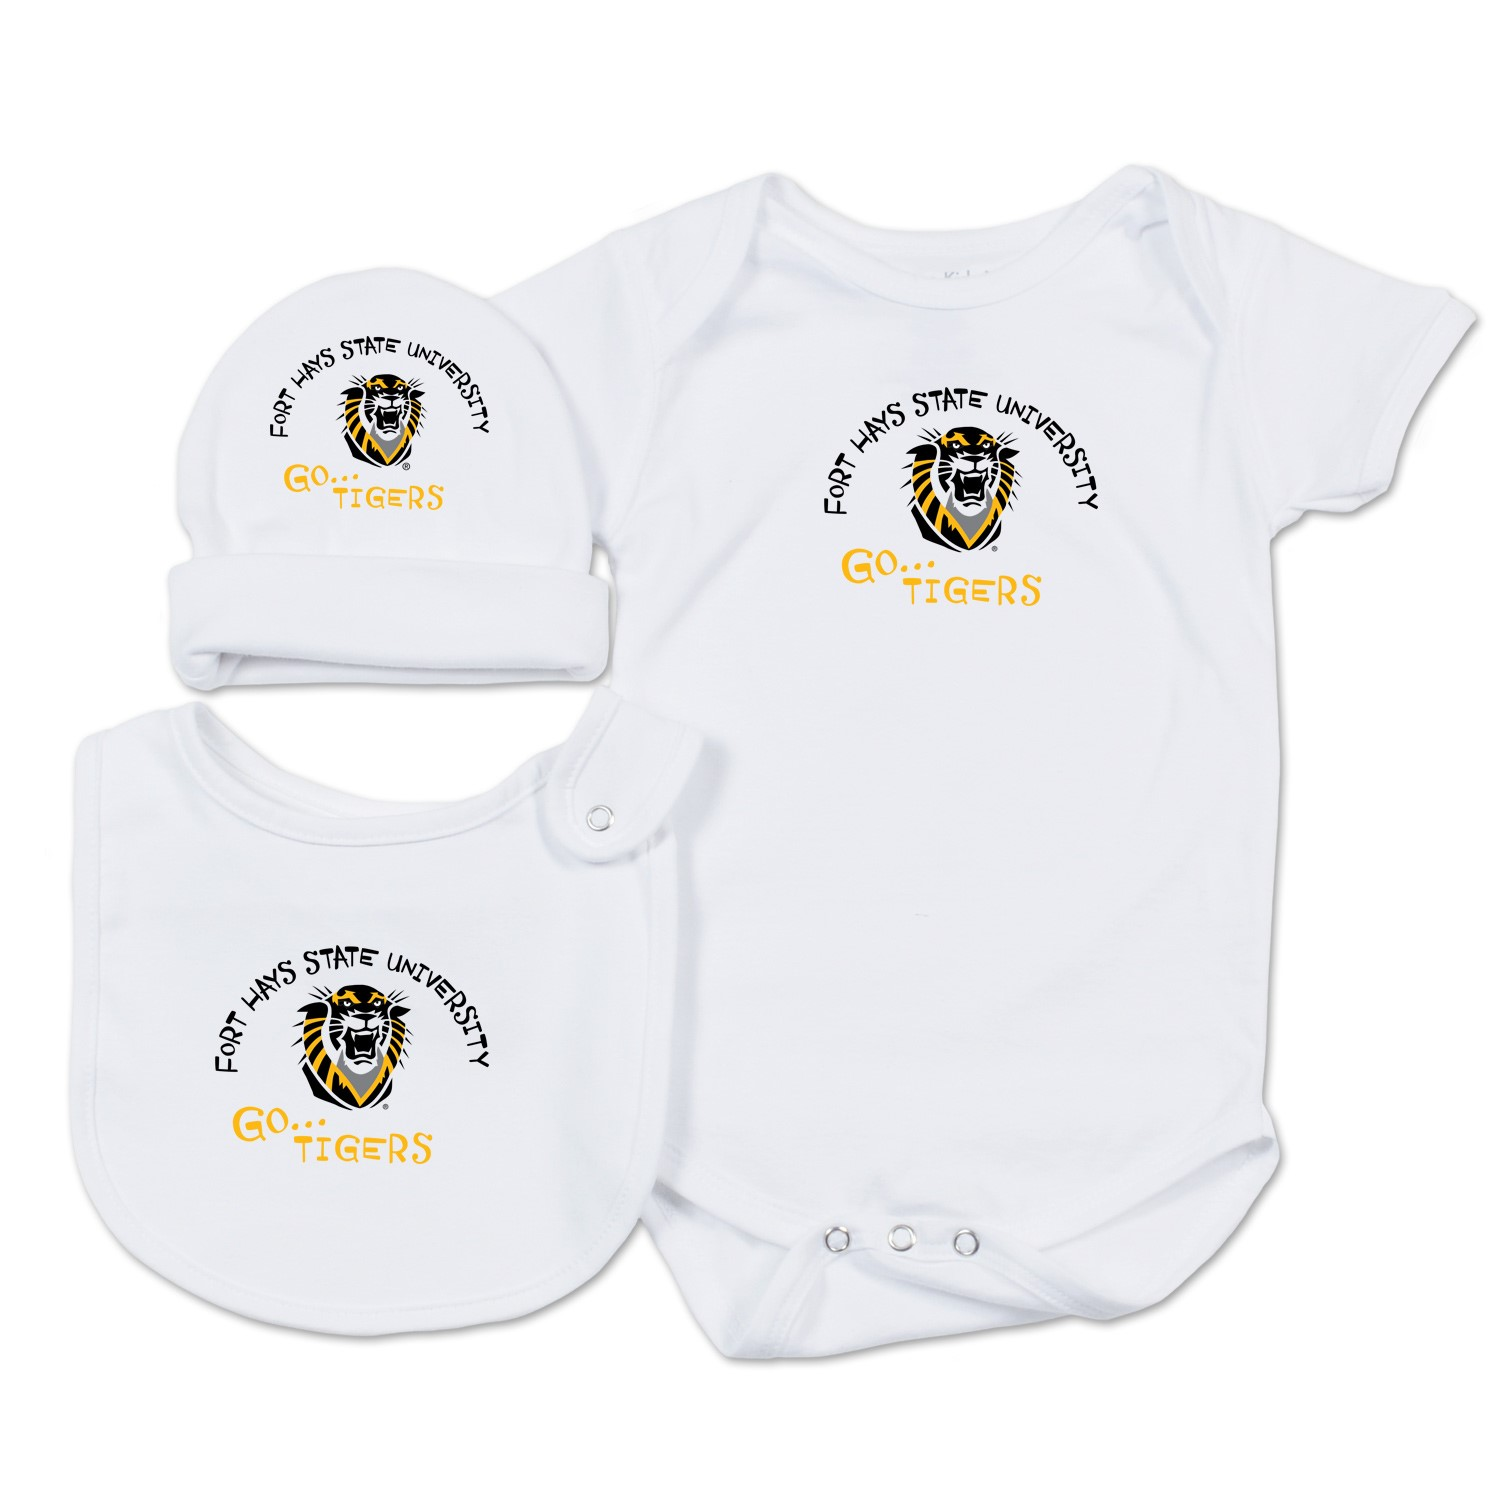 Image for the Fort Hays State University Baby Essentials Set, White, College Kids product